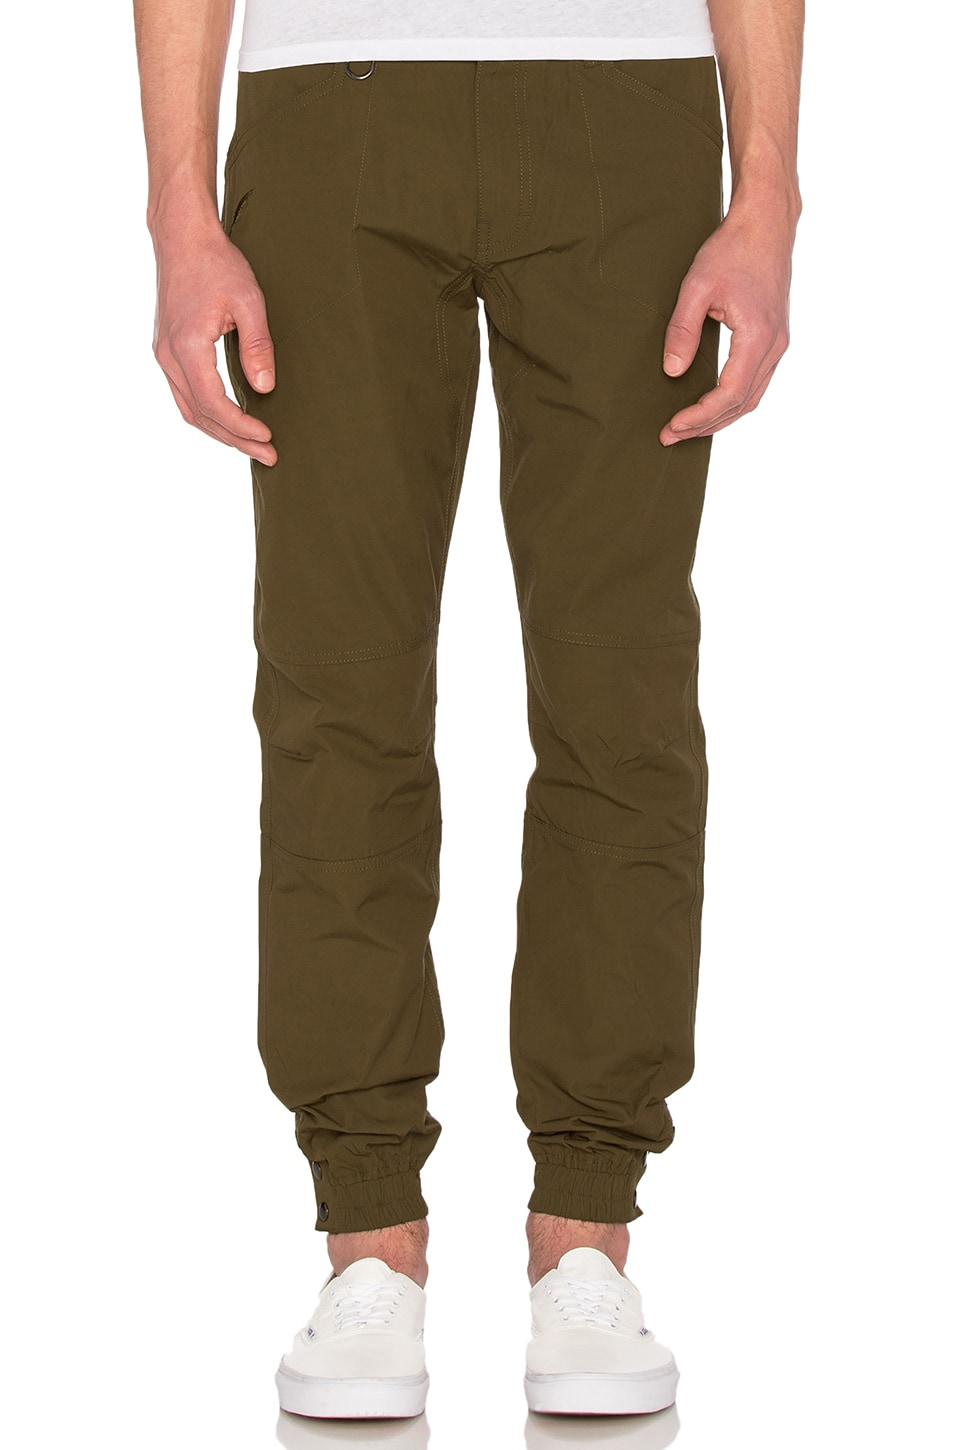 Maverick Joggers by Publish